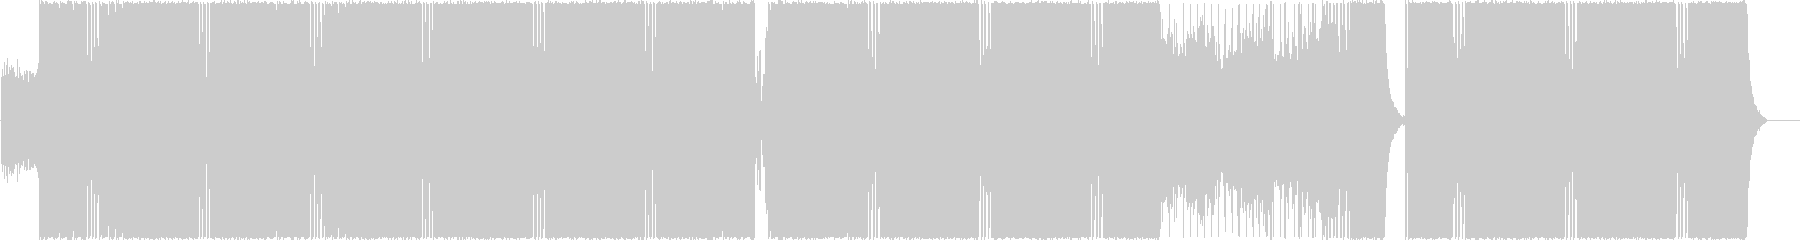 Dramatic and exciting EDM's unreproduced waveform